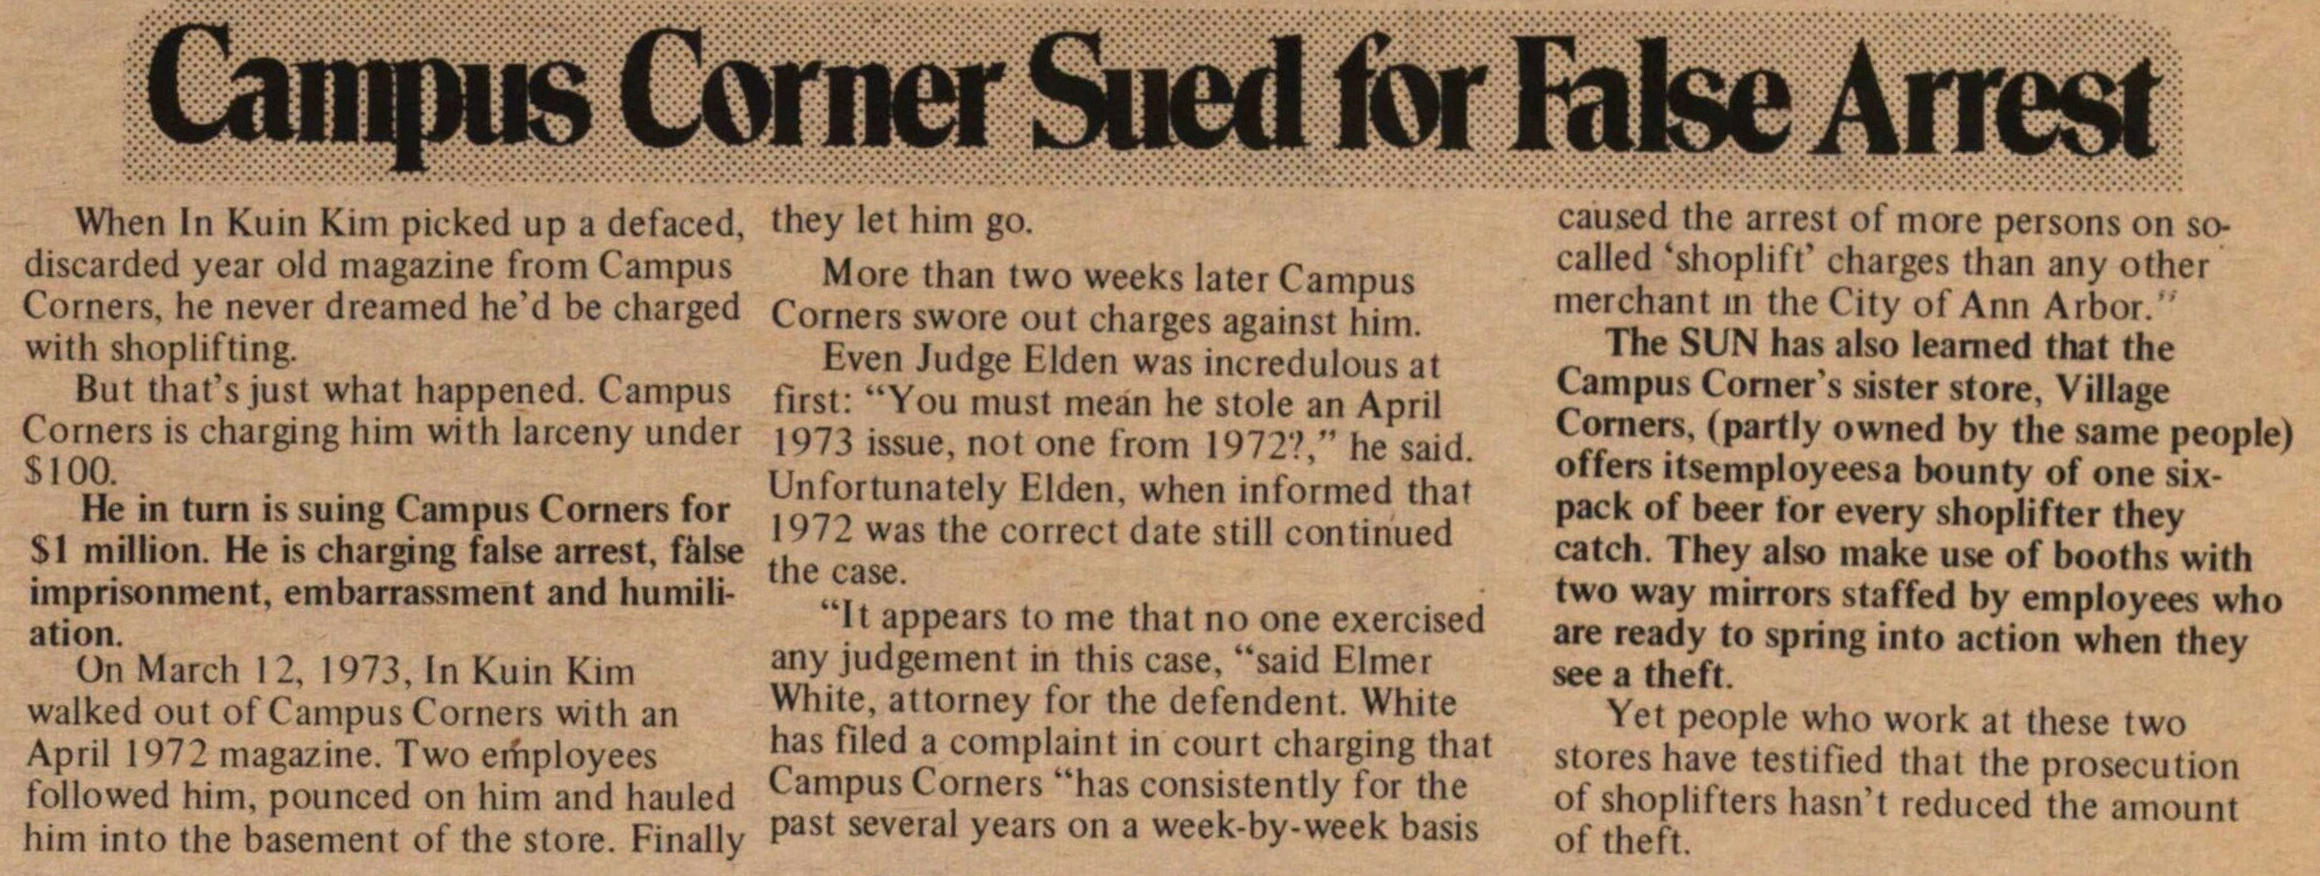 Campus Corner Sued For False Arrest image